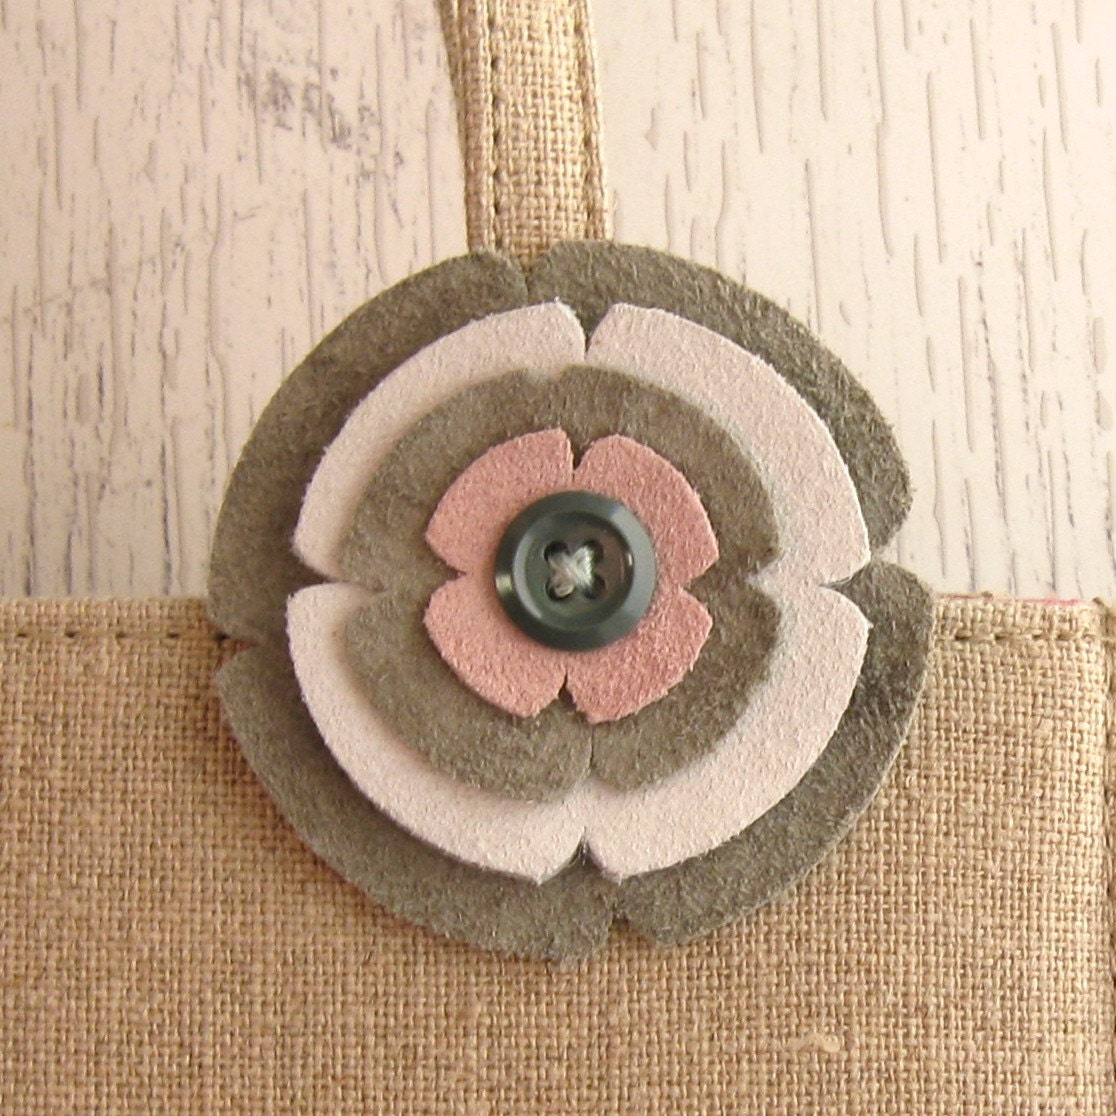 Spring Flower Handmade Leather Brooch in Pink and Grey